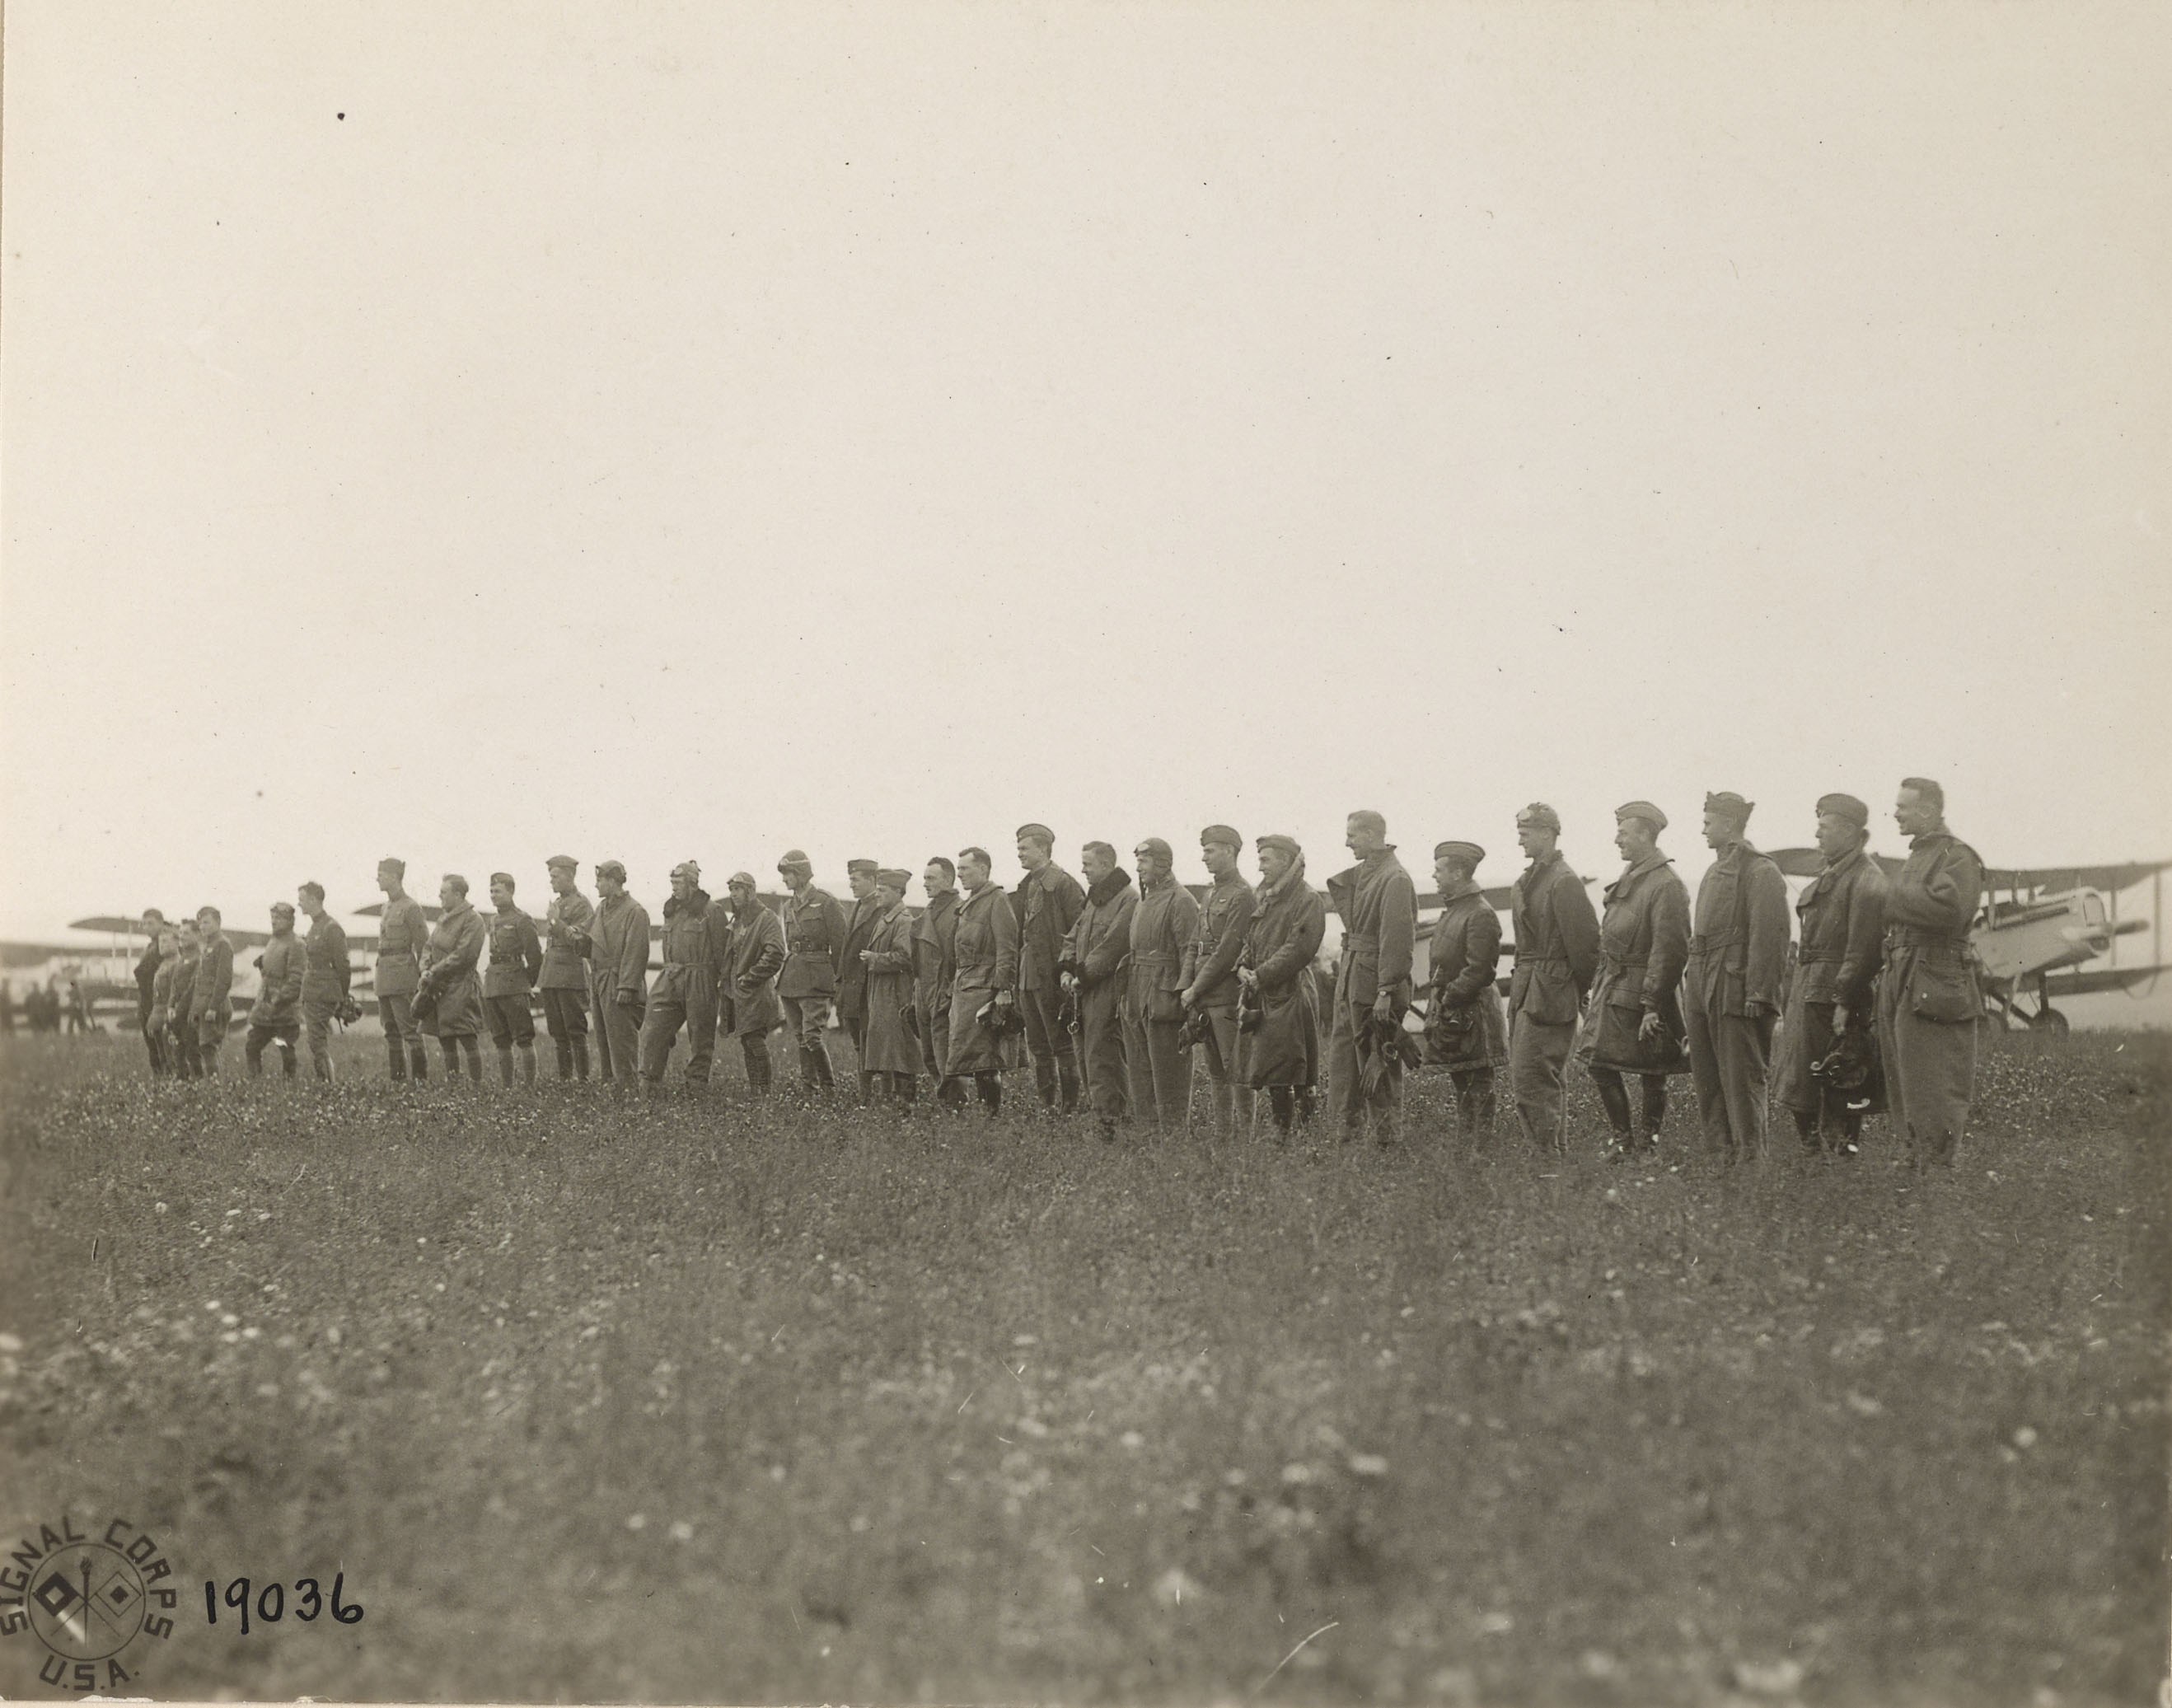 A line of about thirty men in front of a line planes on the horizon.